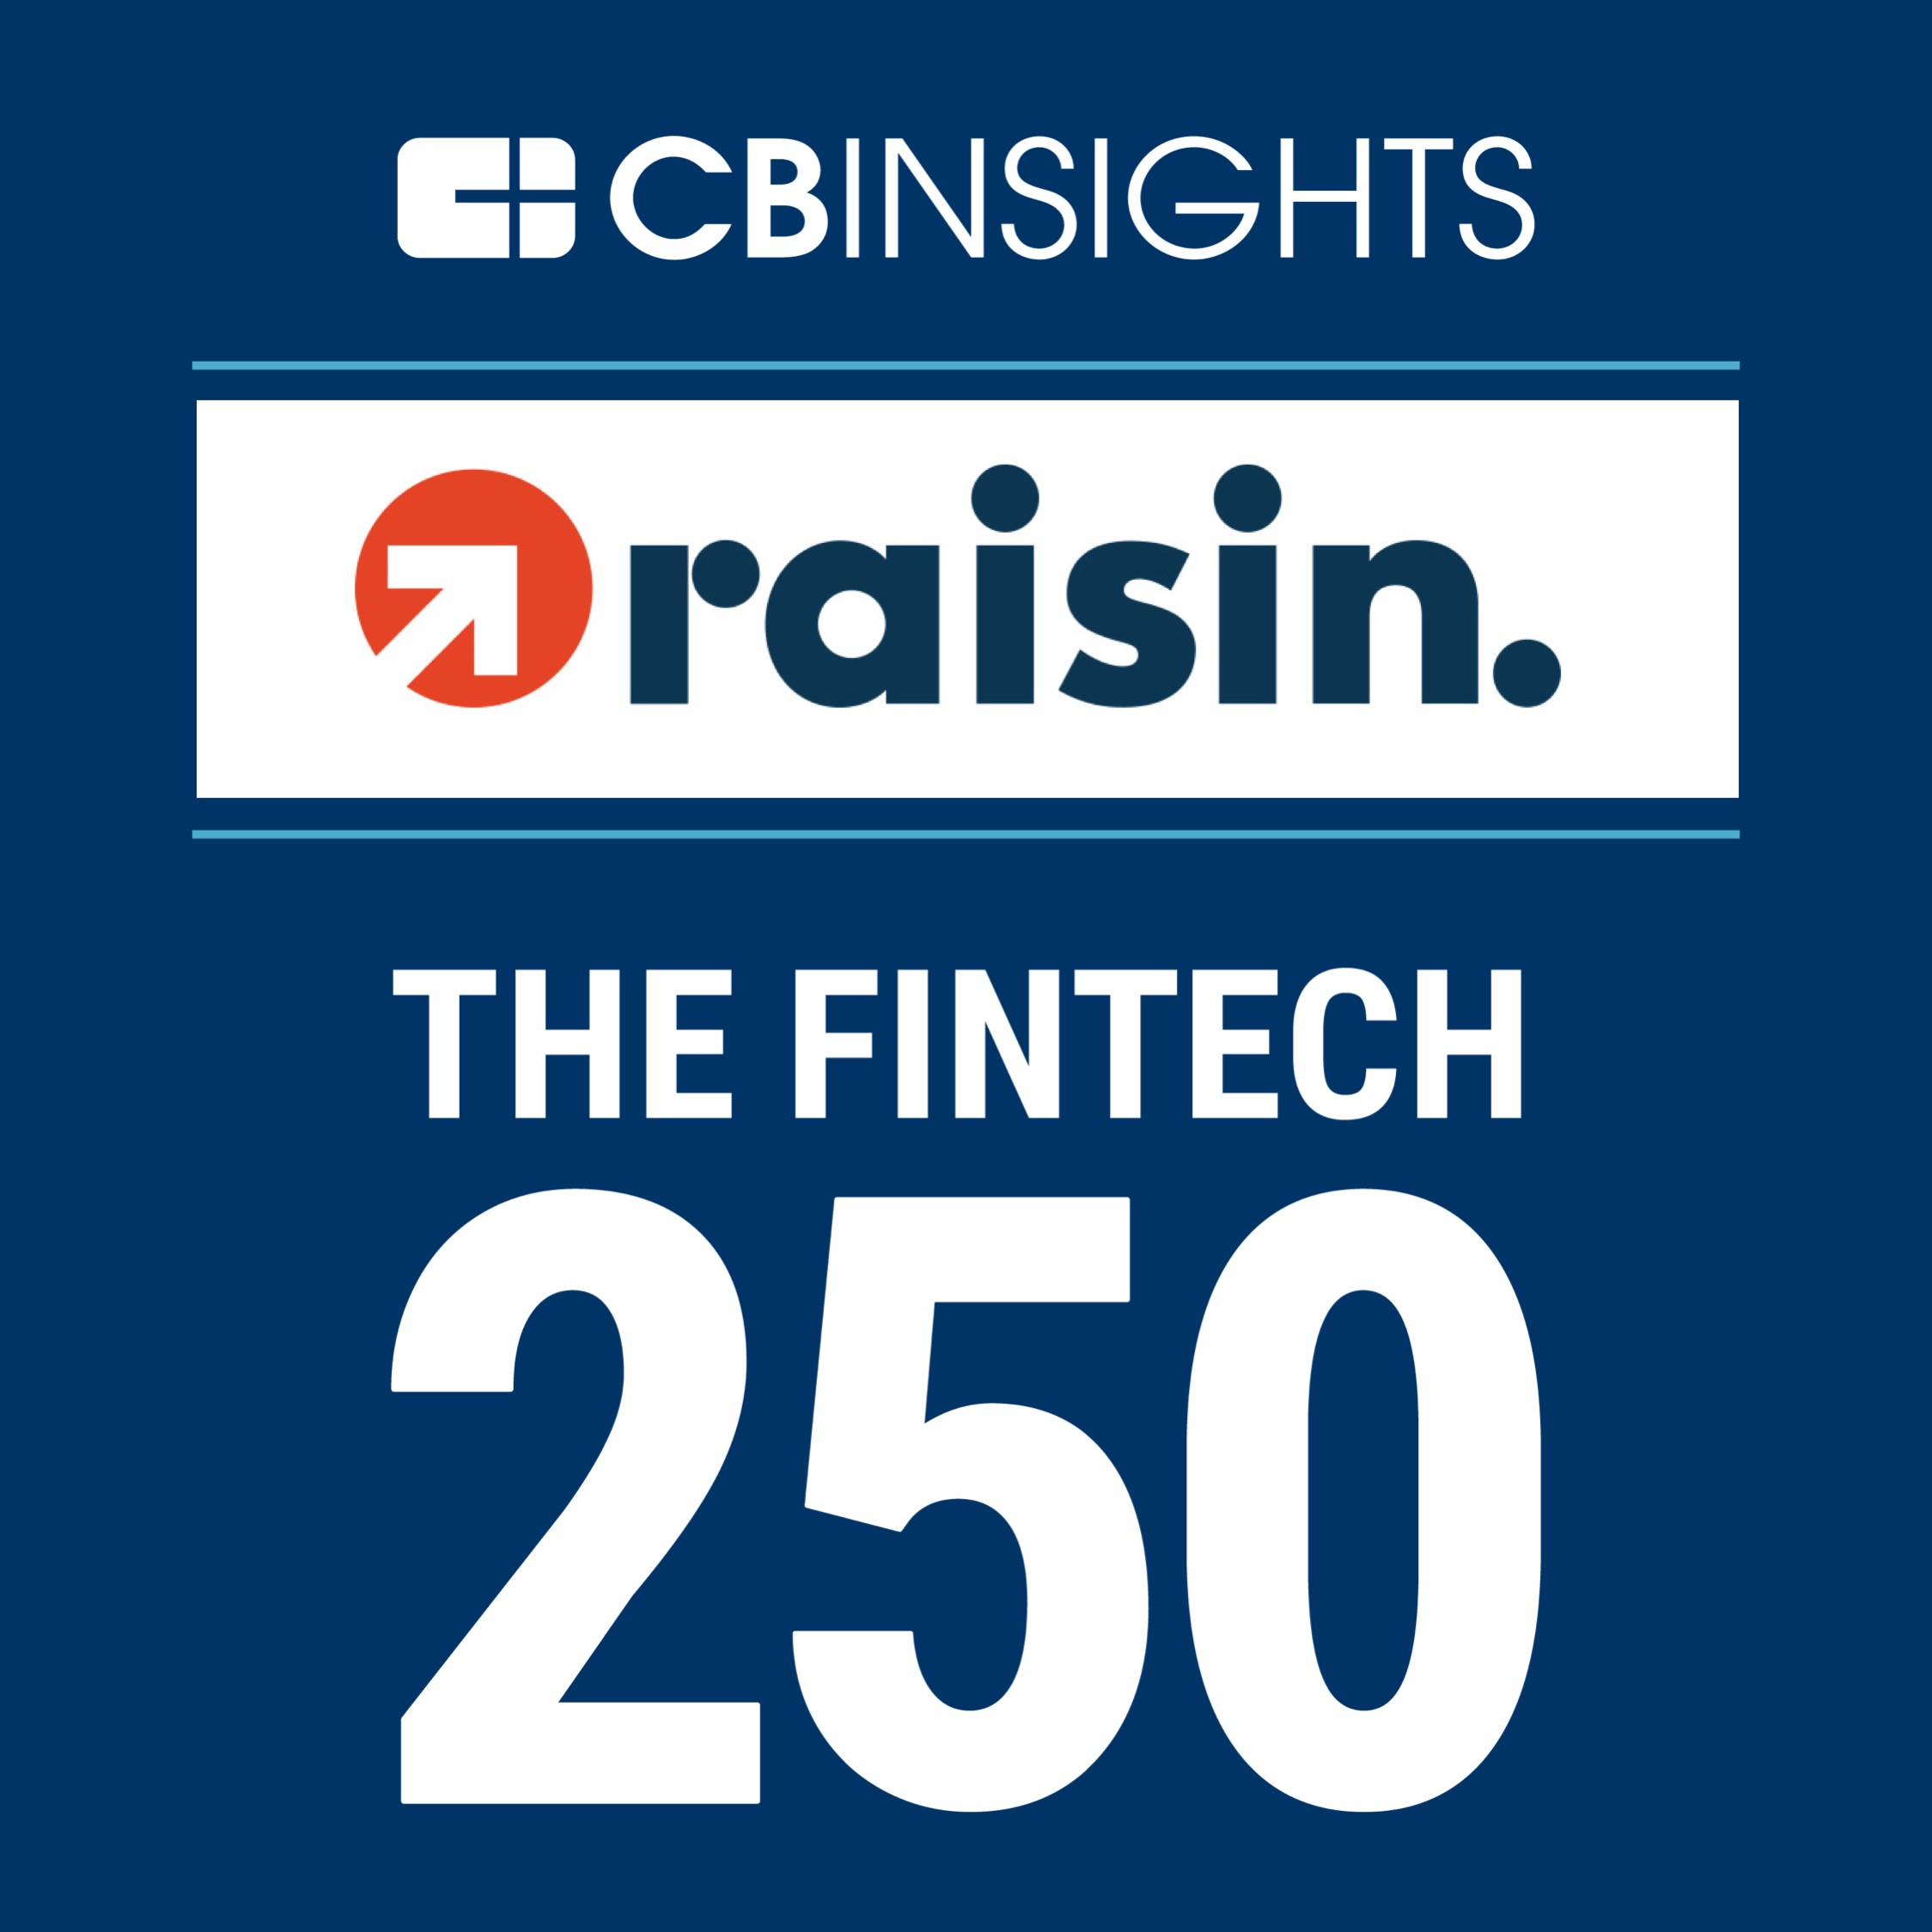 fintech-250-blue-badge